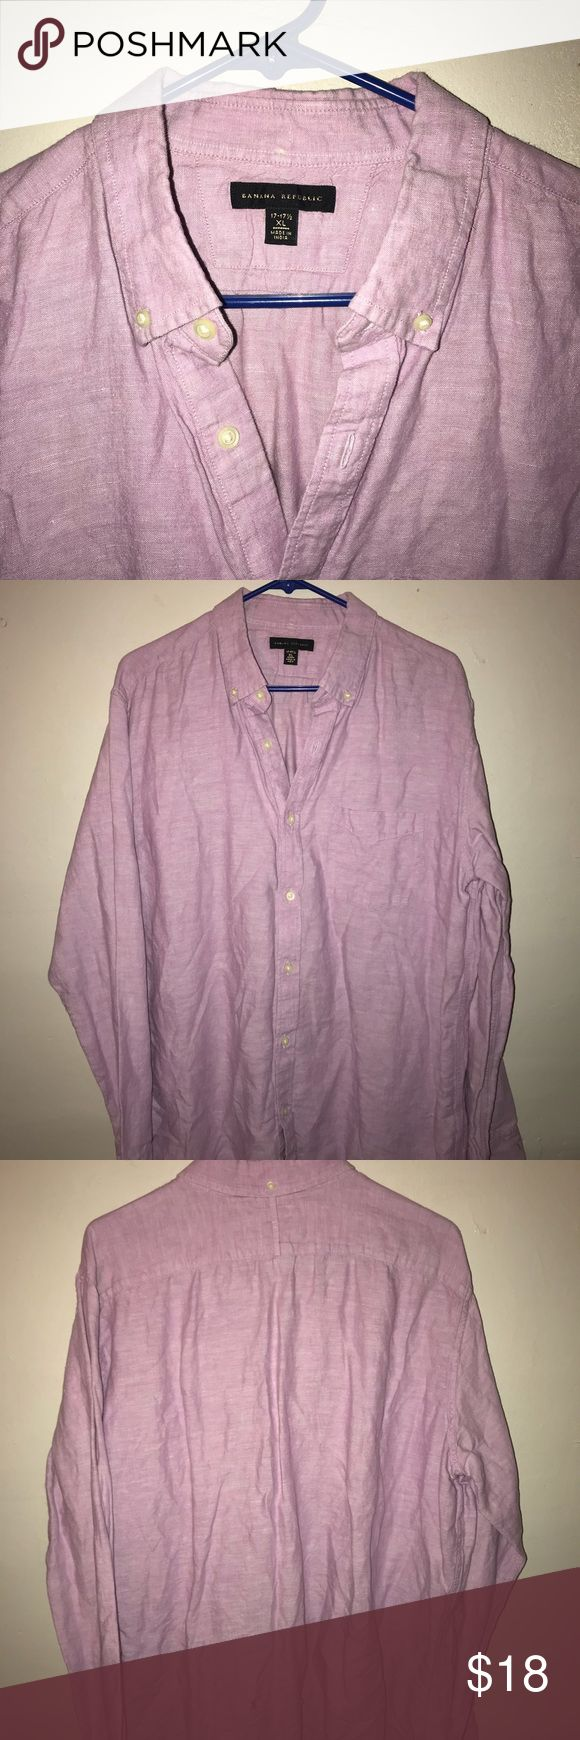 Light Pink Men's Dress Shirt Light pink is such a dashing color on any man! Banana Republic, high quality. Offering low price because of one small hole on the low back. Banana Republic Shirts Dress Shirts